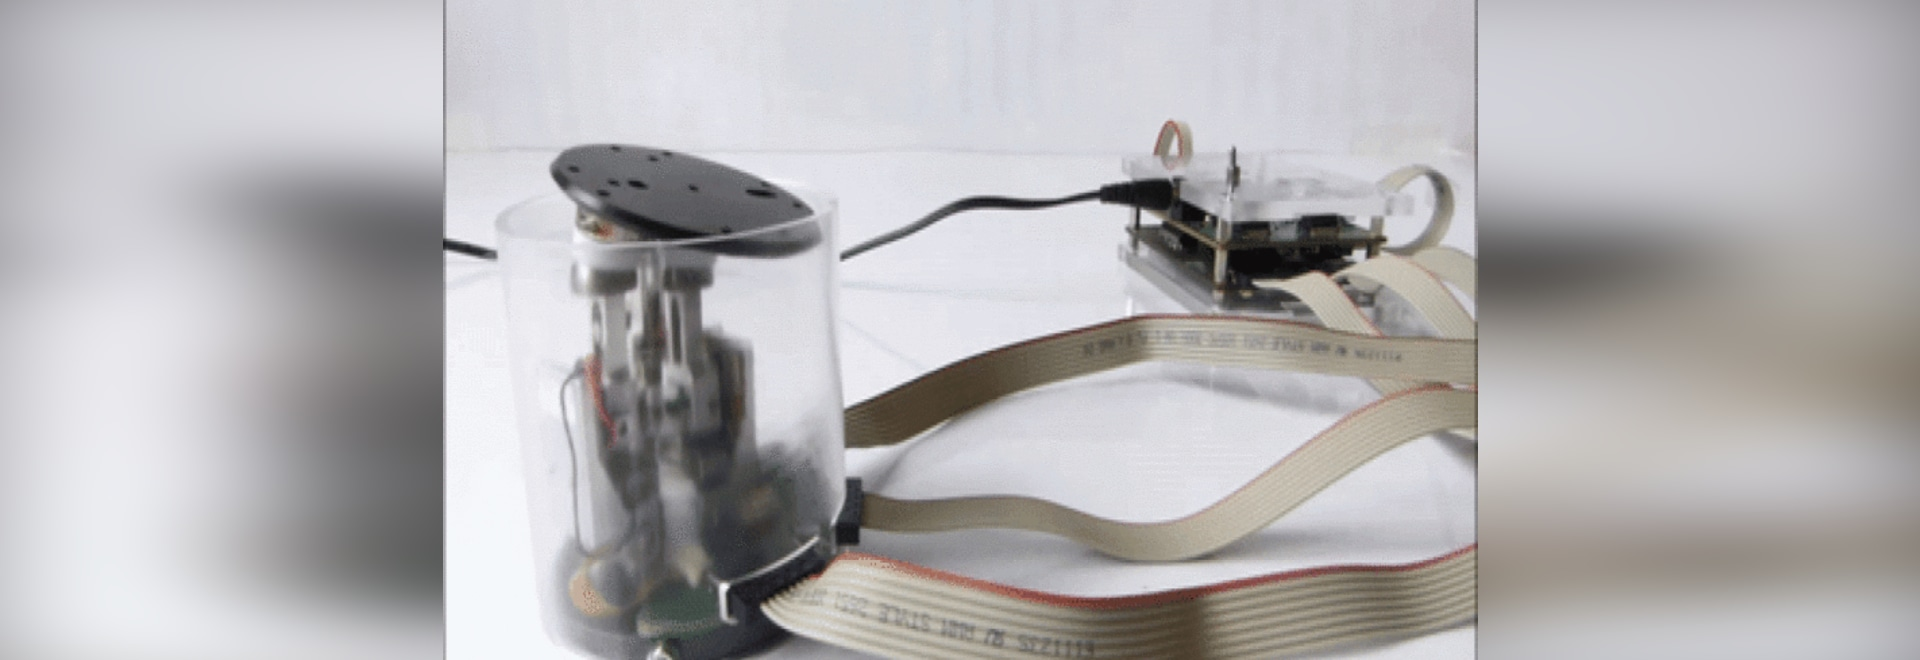 TrAC: A Piezo Actuator for Outer Space and Micro Robots